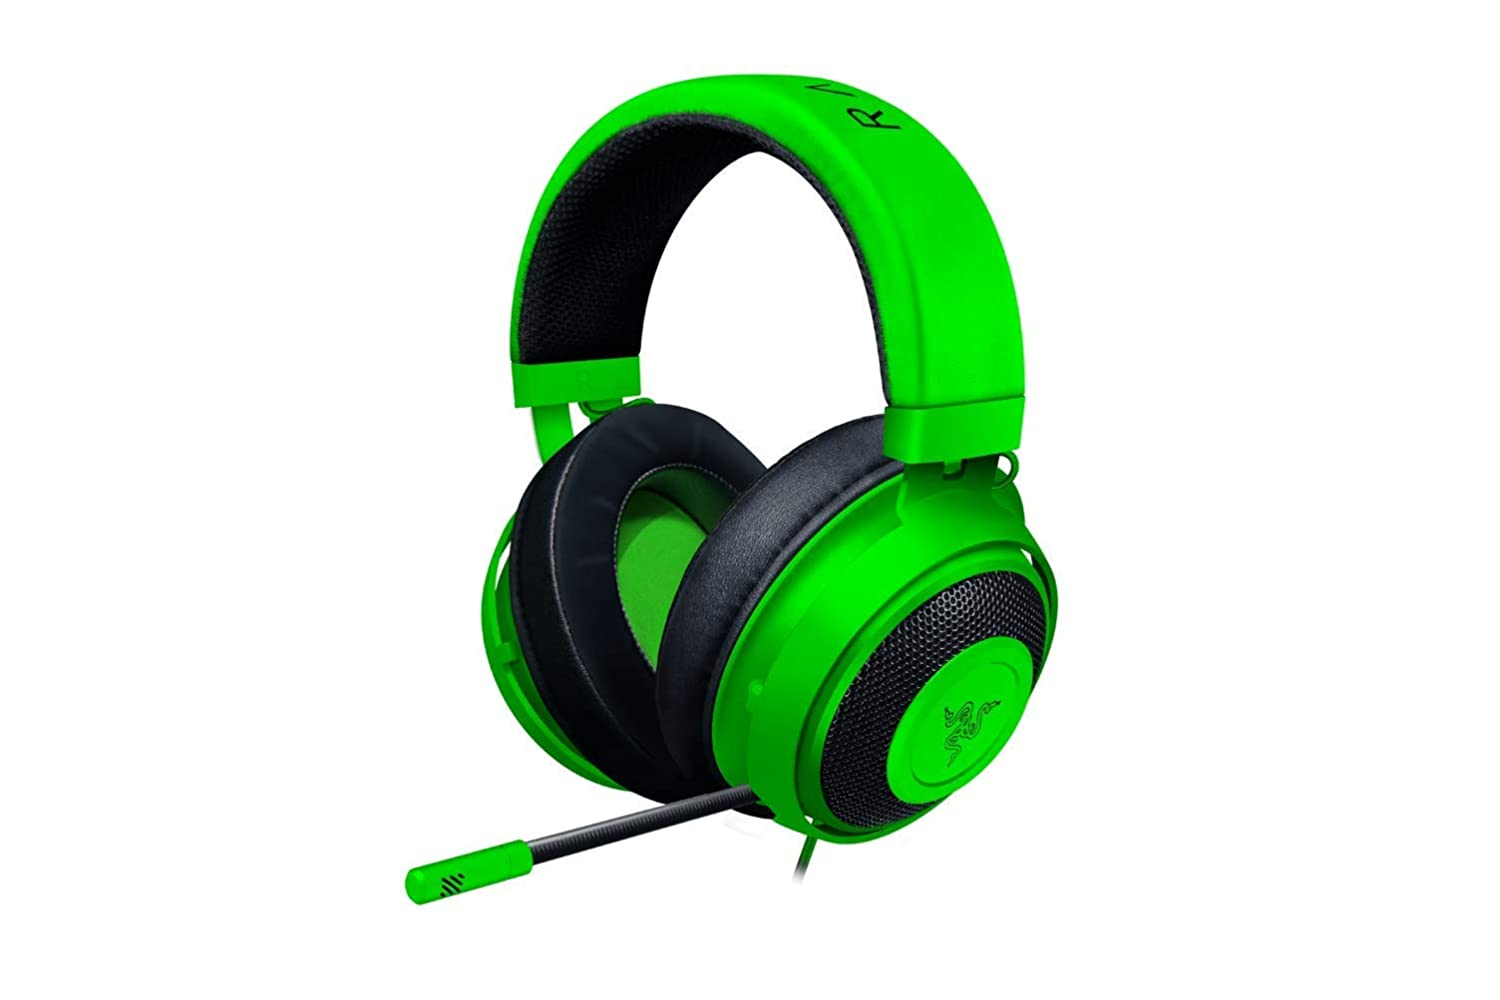 Razer Kraken Gaming Headset 2019 Lightweight Aluminum Frame – Retractable Noise Cancelling Mic – for PC, Xbox, PS4, Nintendo Switch – Green Renewed